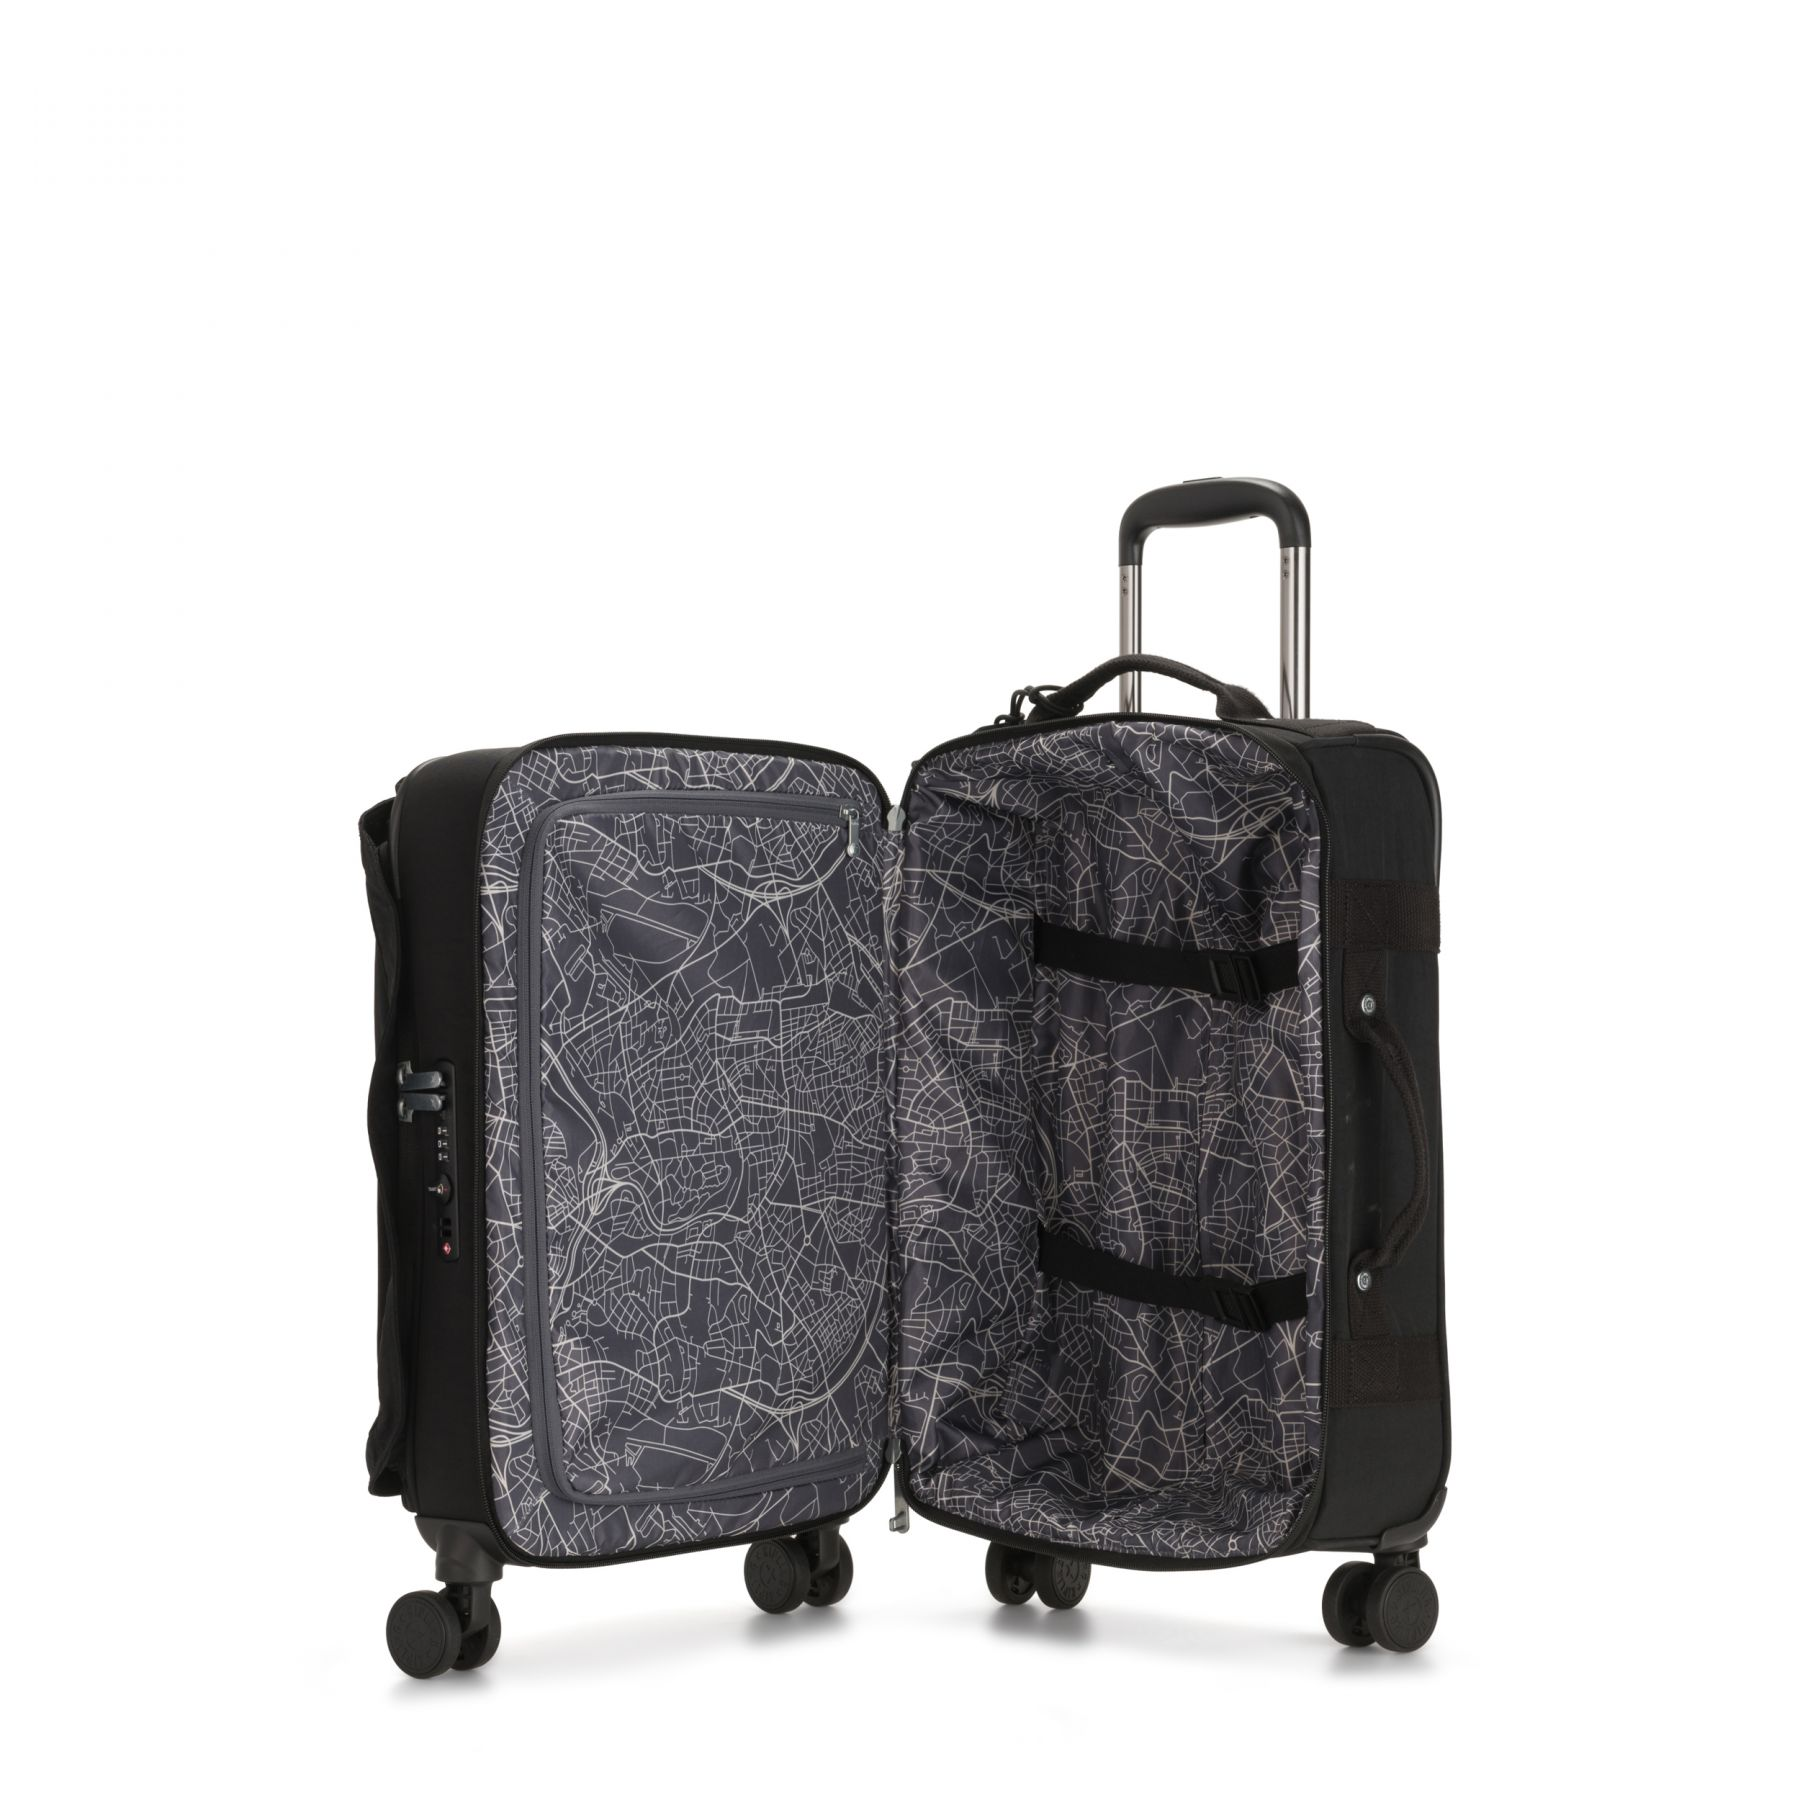 SPONTANEOUS S Latest Luggage by Kipling - Inside view